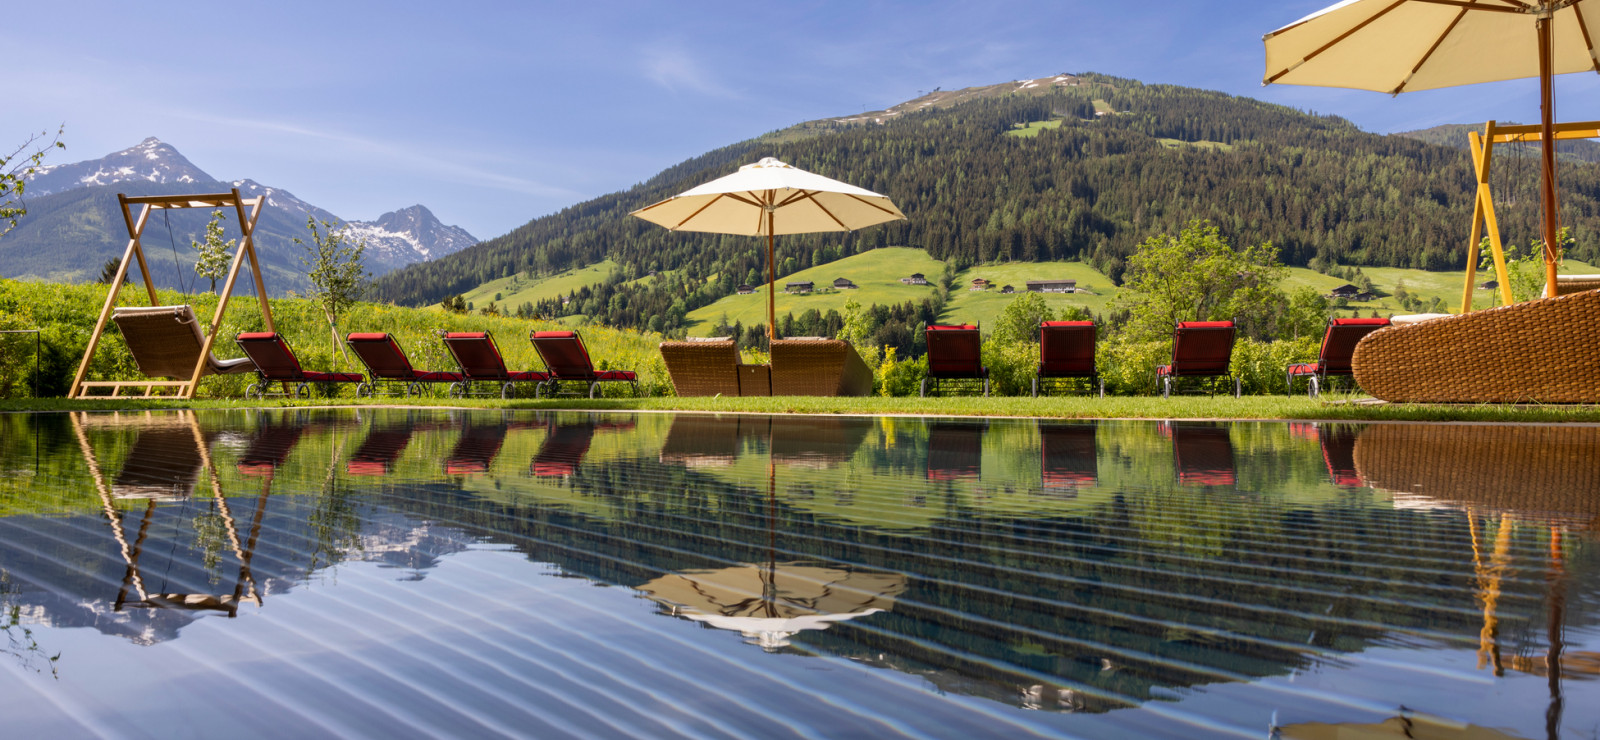 Wellnesshotel Der Alpbacherhof ****s Natur & SPA Resort | Alpbach 279